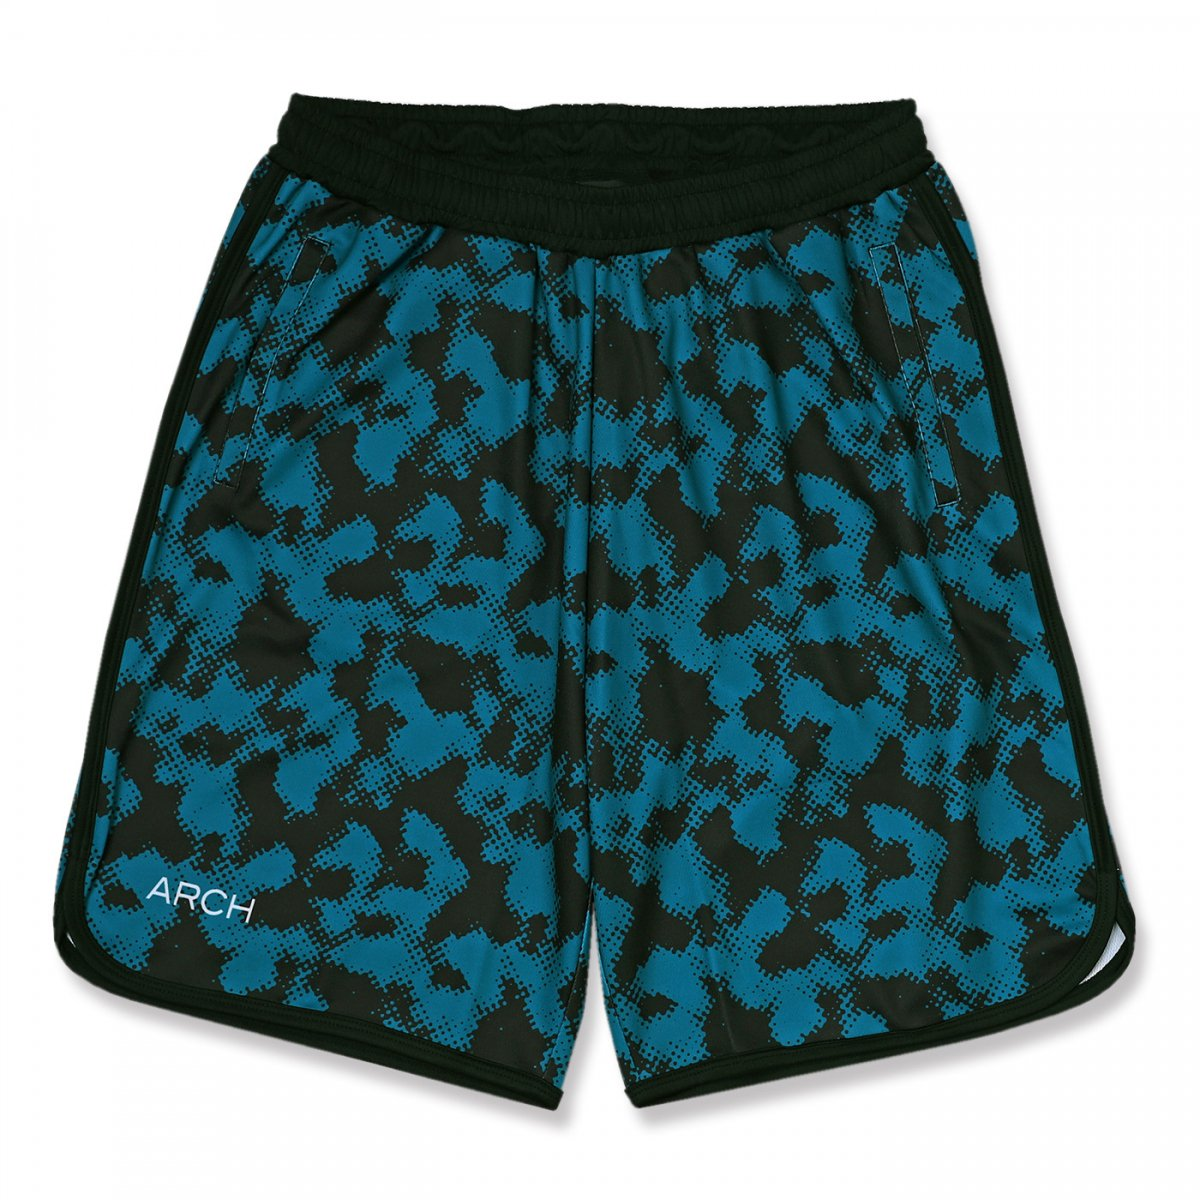 halftone camo shorts【blue】